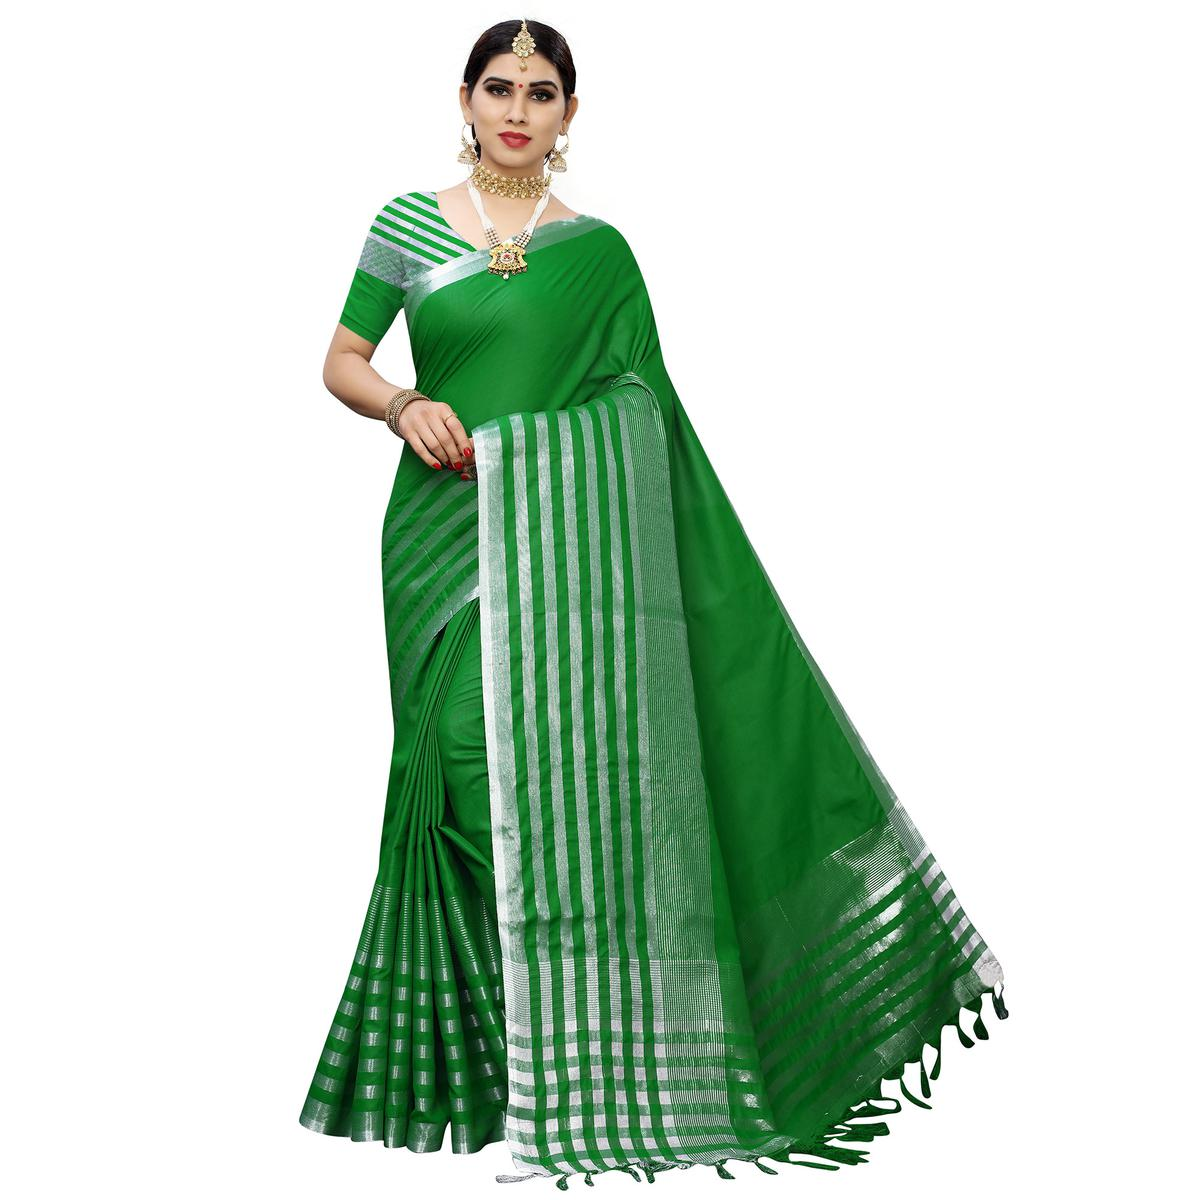 Imposing Green Colored Casual Printed Cotton Silk Saree With Tassels